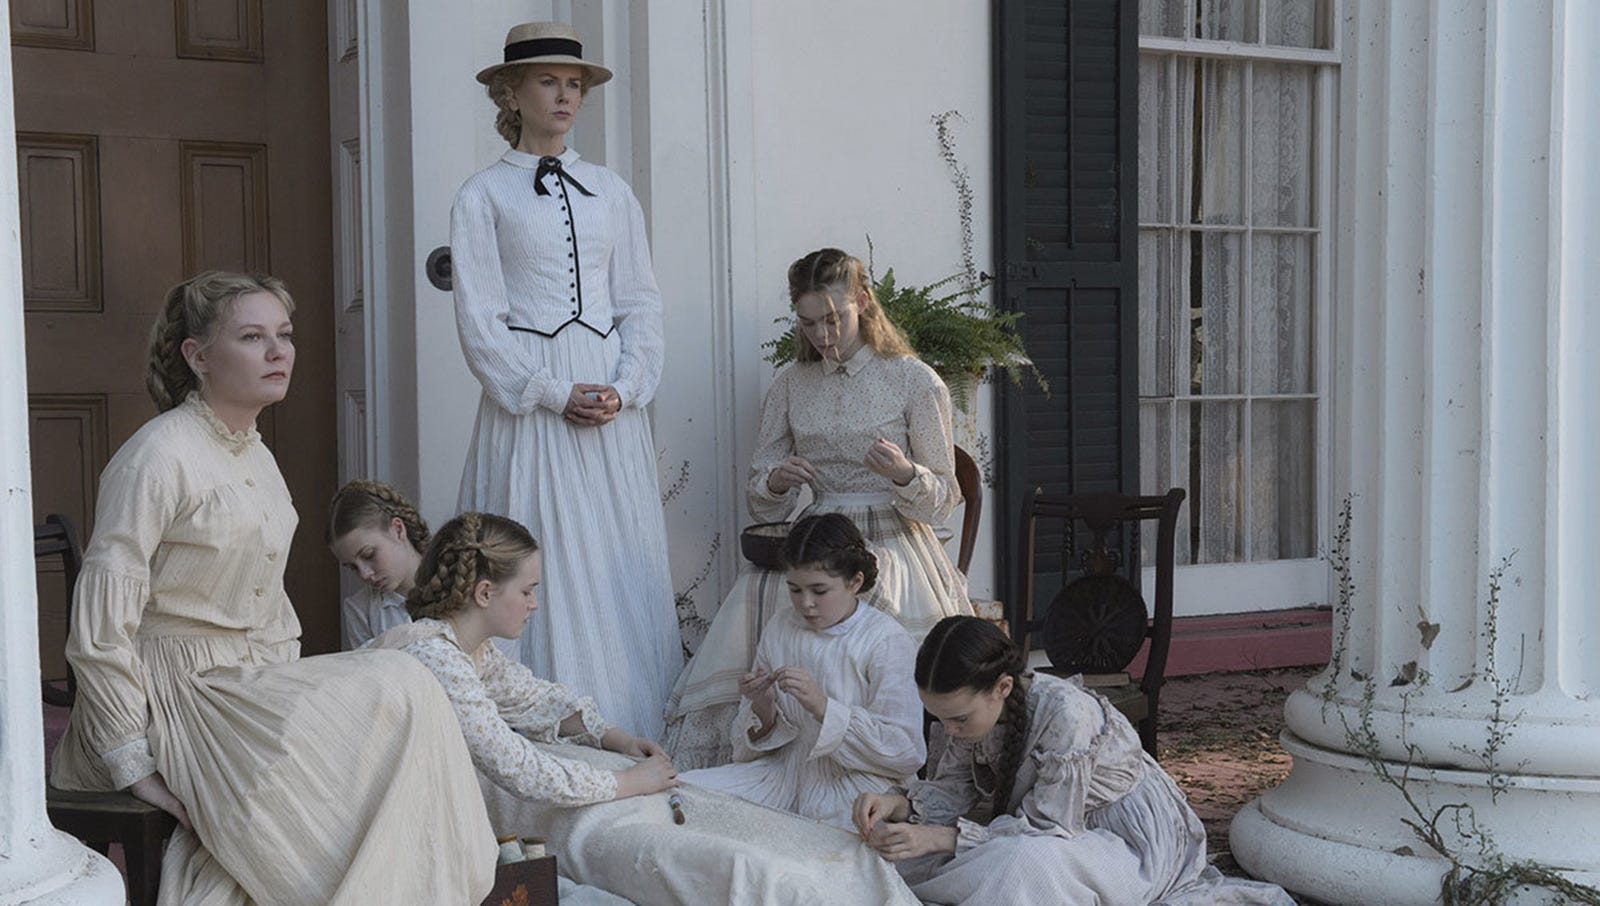 The Beguiled: Set in a breathtaking Virginia manor in 1864, this elegant gothic thriller exposes the hidden dark side of the Civil War–era south